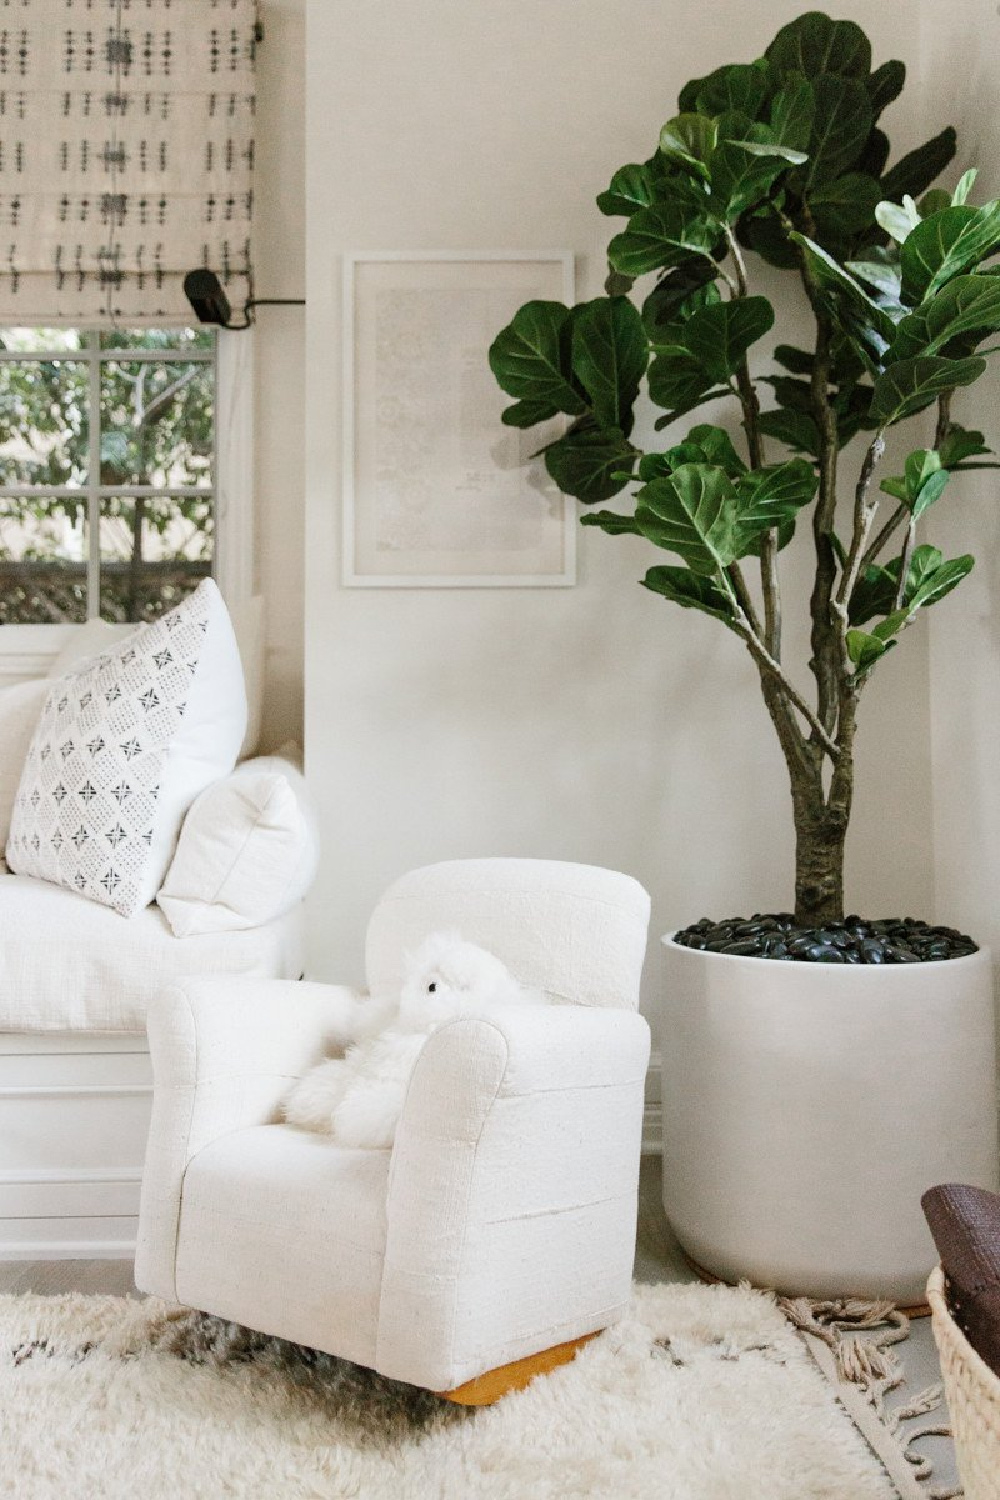 Erin Fetherston den with fiddle leaf tree and child's rocking chair. Come explore more California modern farmhouse interior design inspiration.